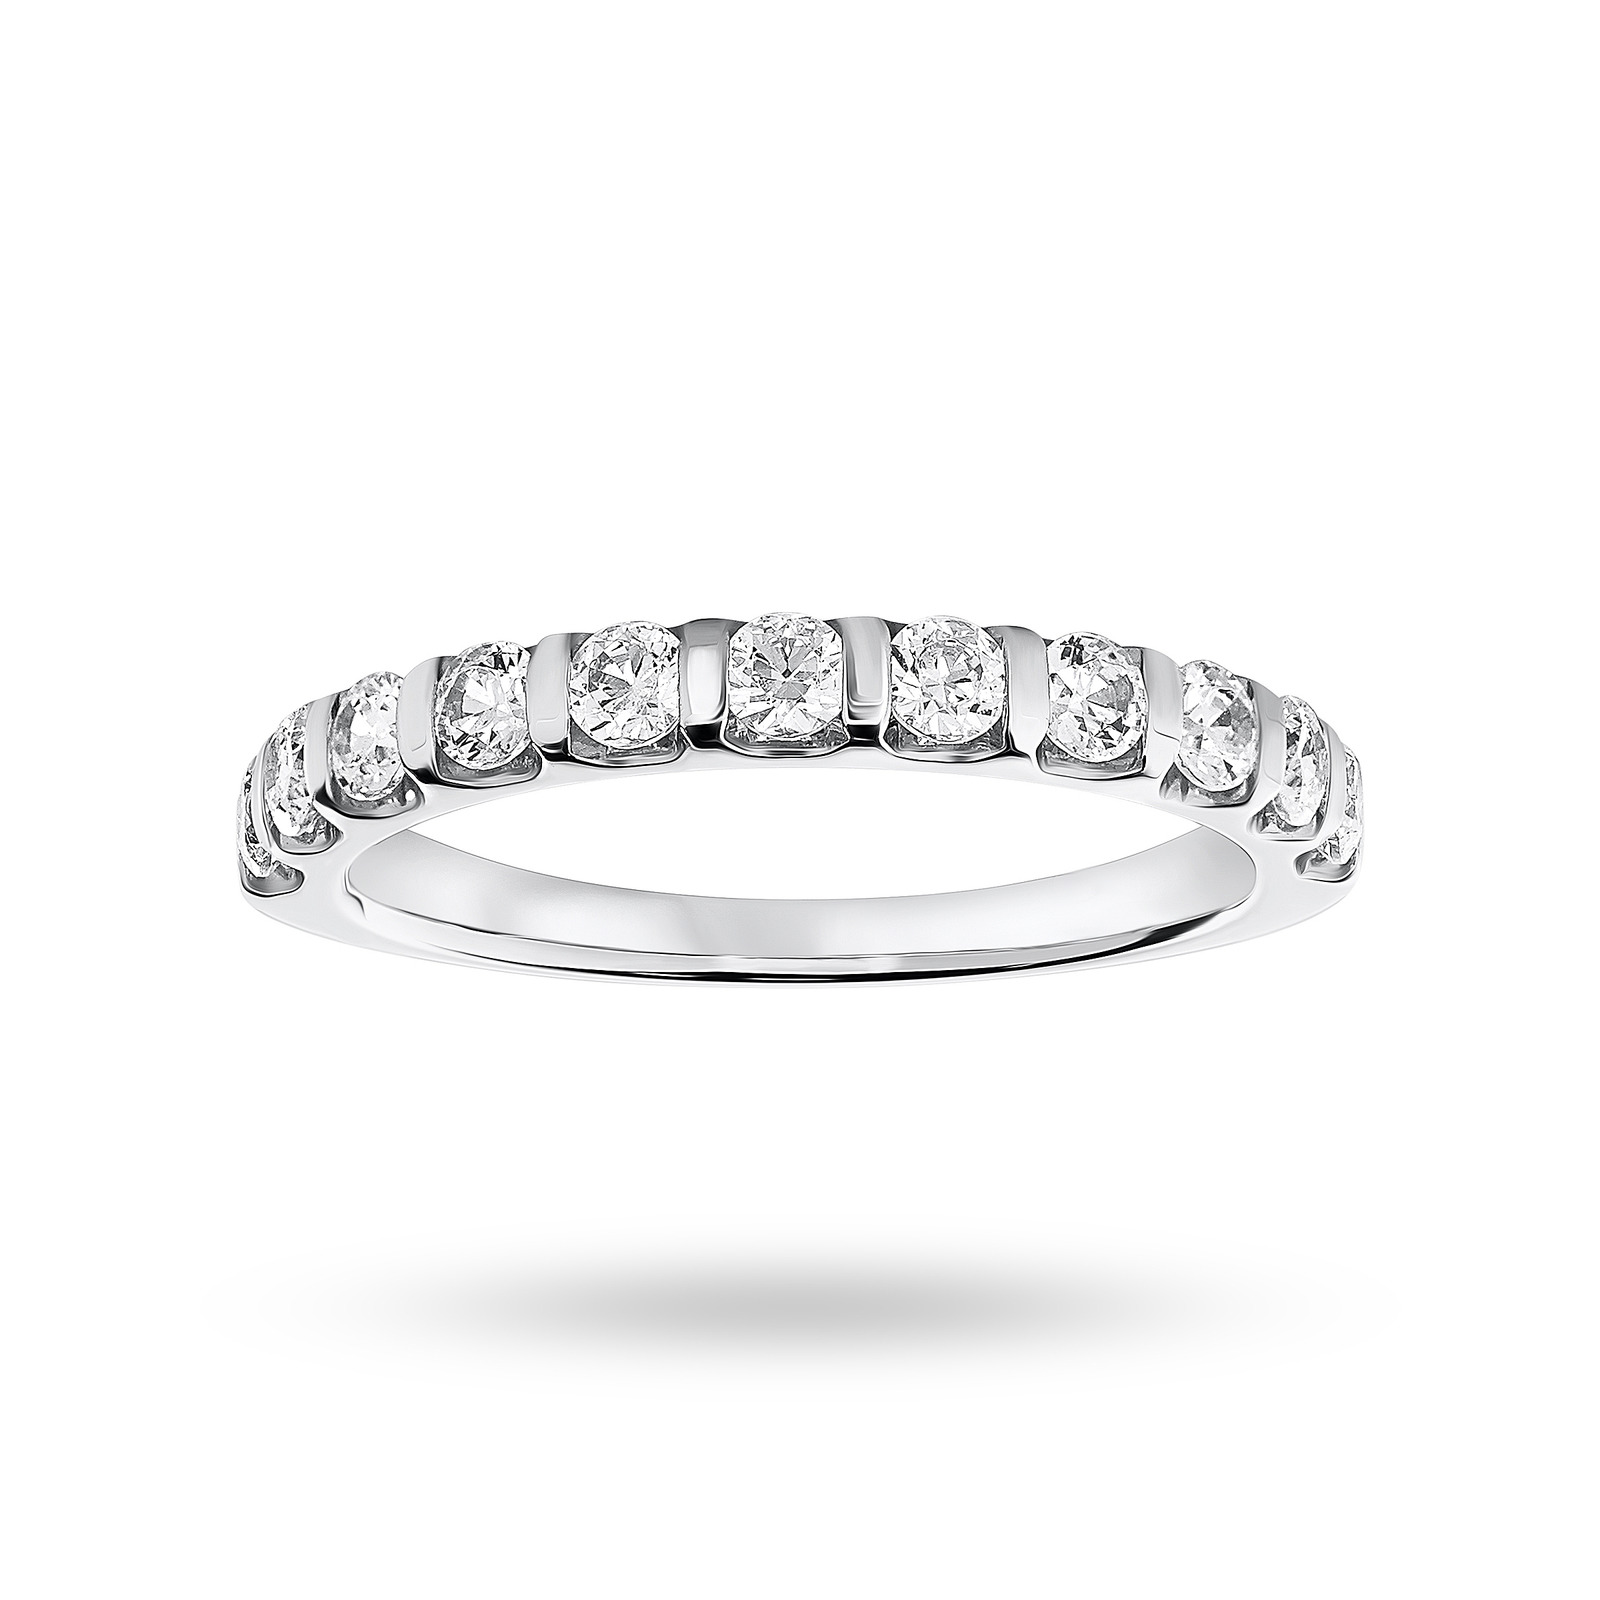 Platinum 0.50 Carat Brilliant Cut Bar Half Eternity Ring